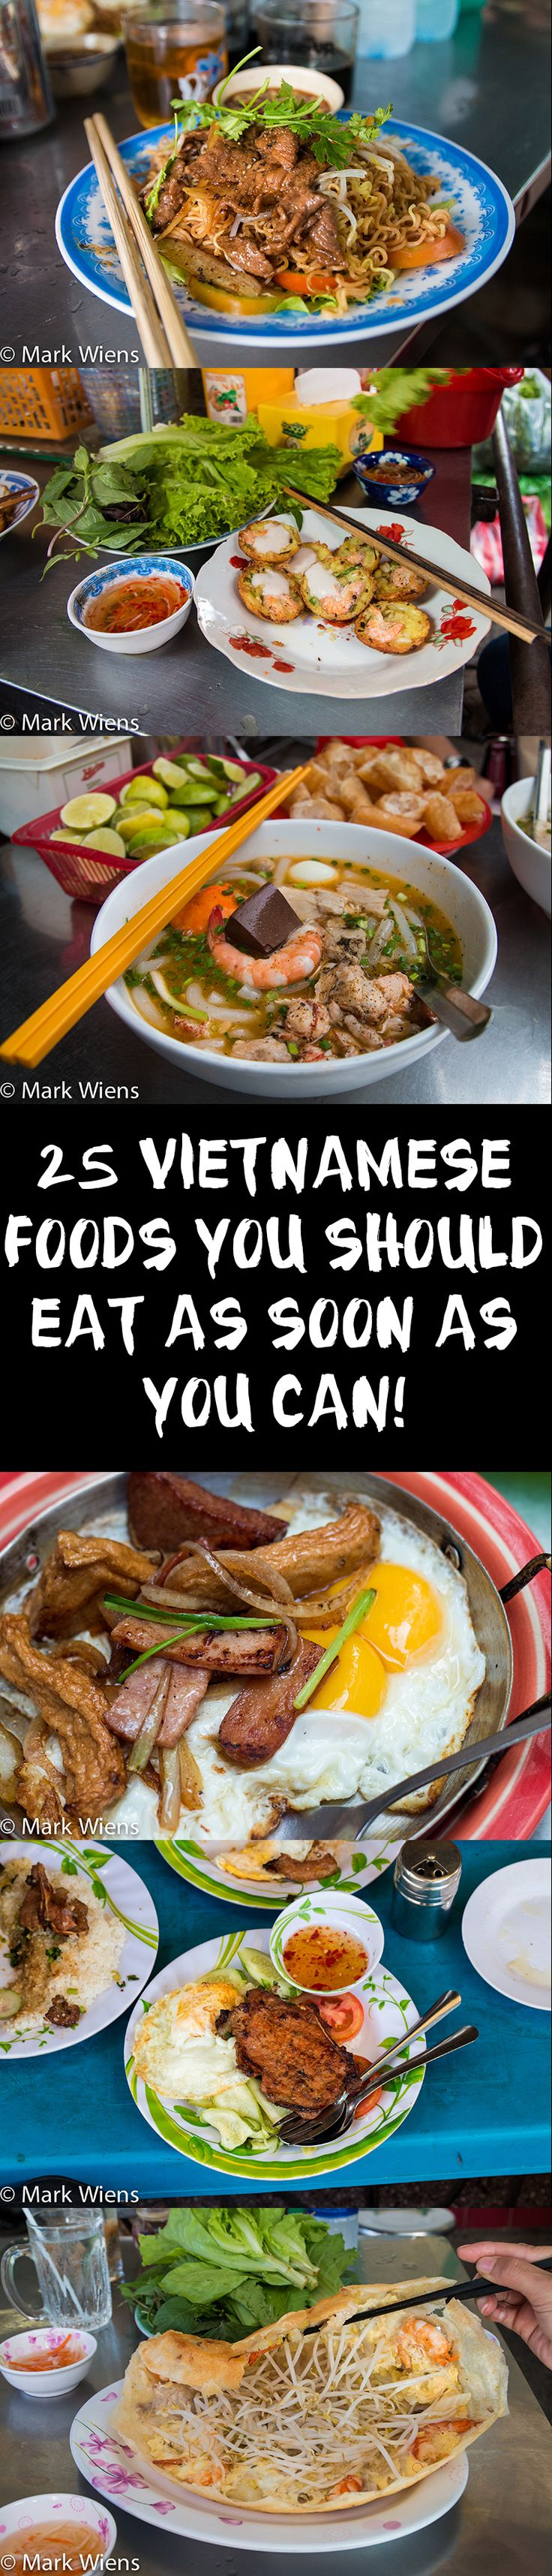 Who else loves Vietnamese food? I think it's an amazing cuisine, with so many diverse flavors made from an abundance of fresh ingredients. This guide includes 25 Vietnamese dishes you've got to try! Full post here: http://migrationology.com/2015/02/vietnamese-food-guide-saigon/ #VietnameseFood #food #Saigon